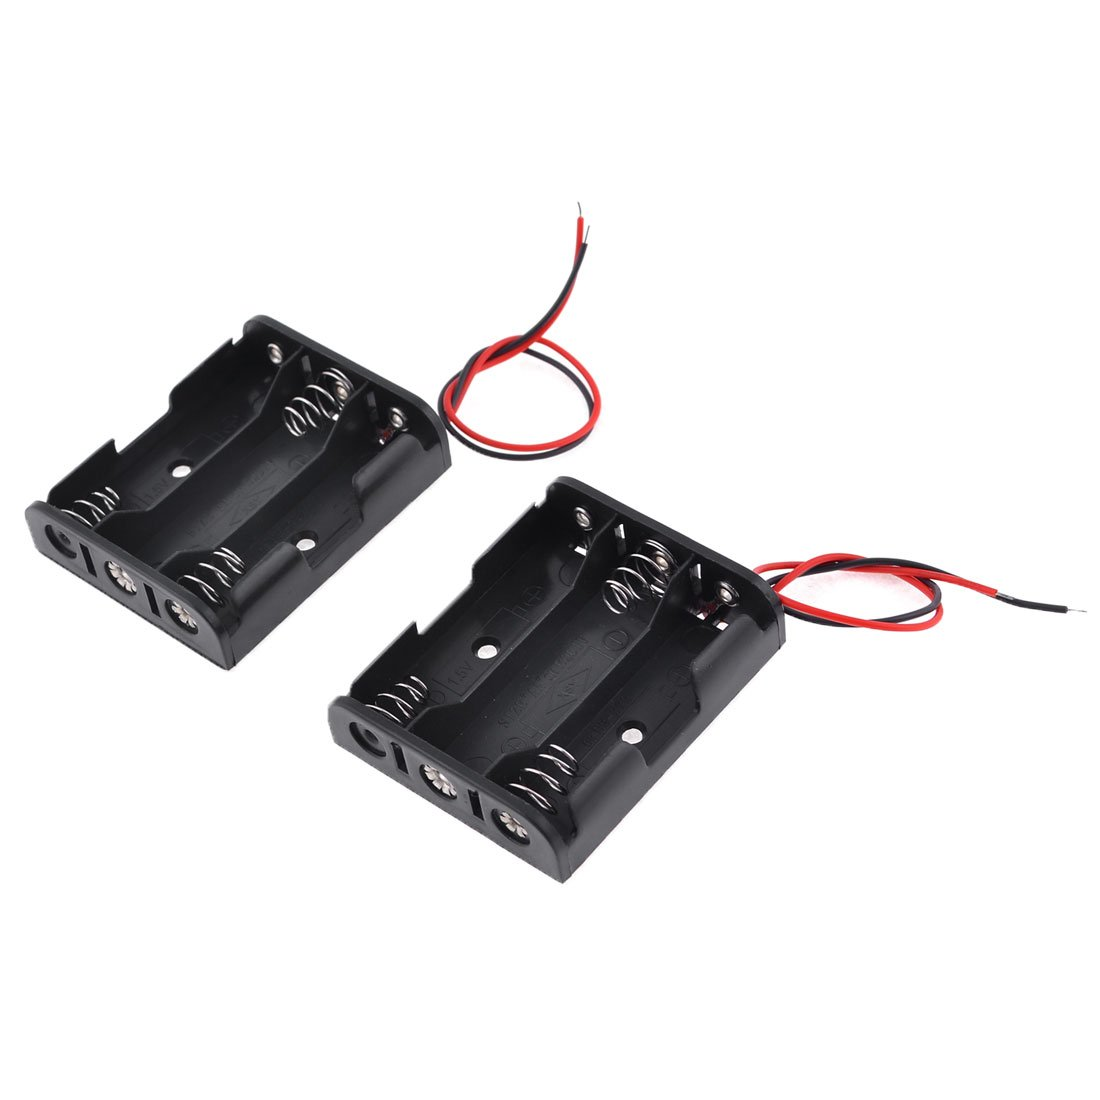 2 Pcs Black Red Cable Plastic 3 x 1.5V AA Batteries Cell